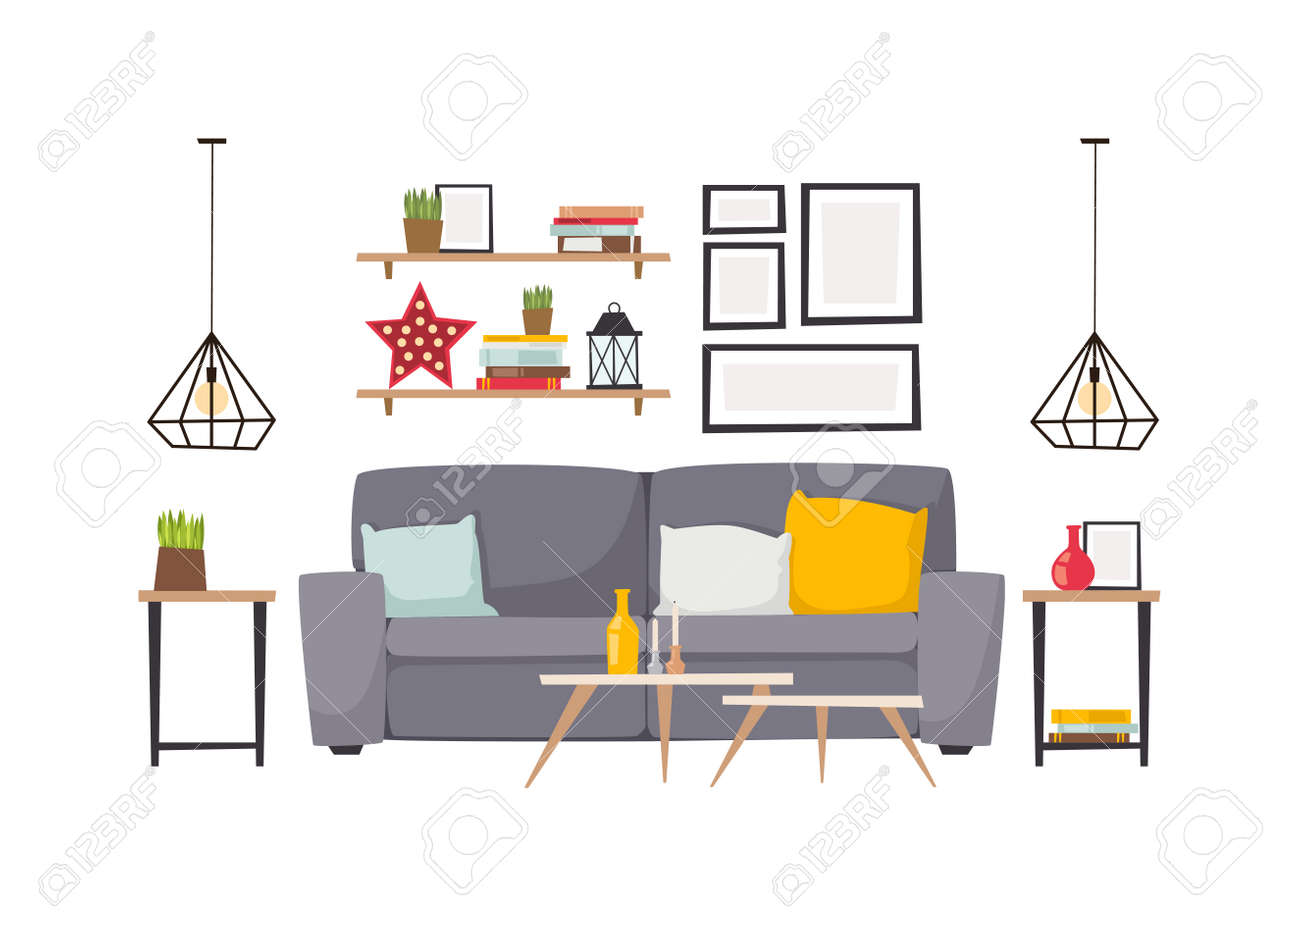 Stylish Living Room Apartment Interior With Grey Sofa And Small